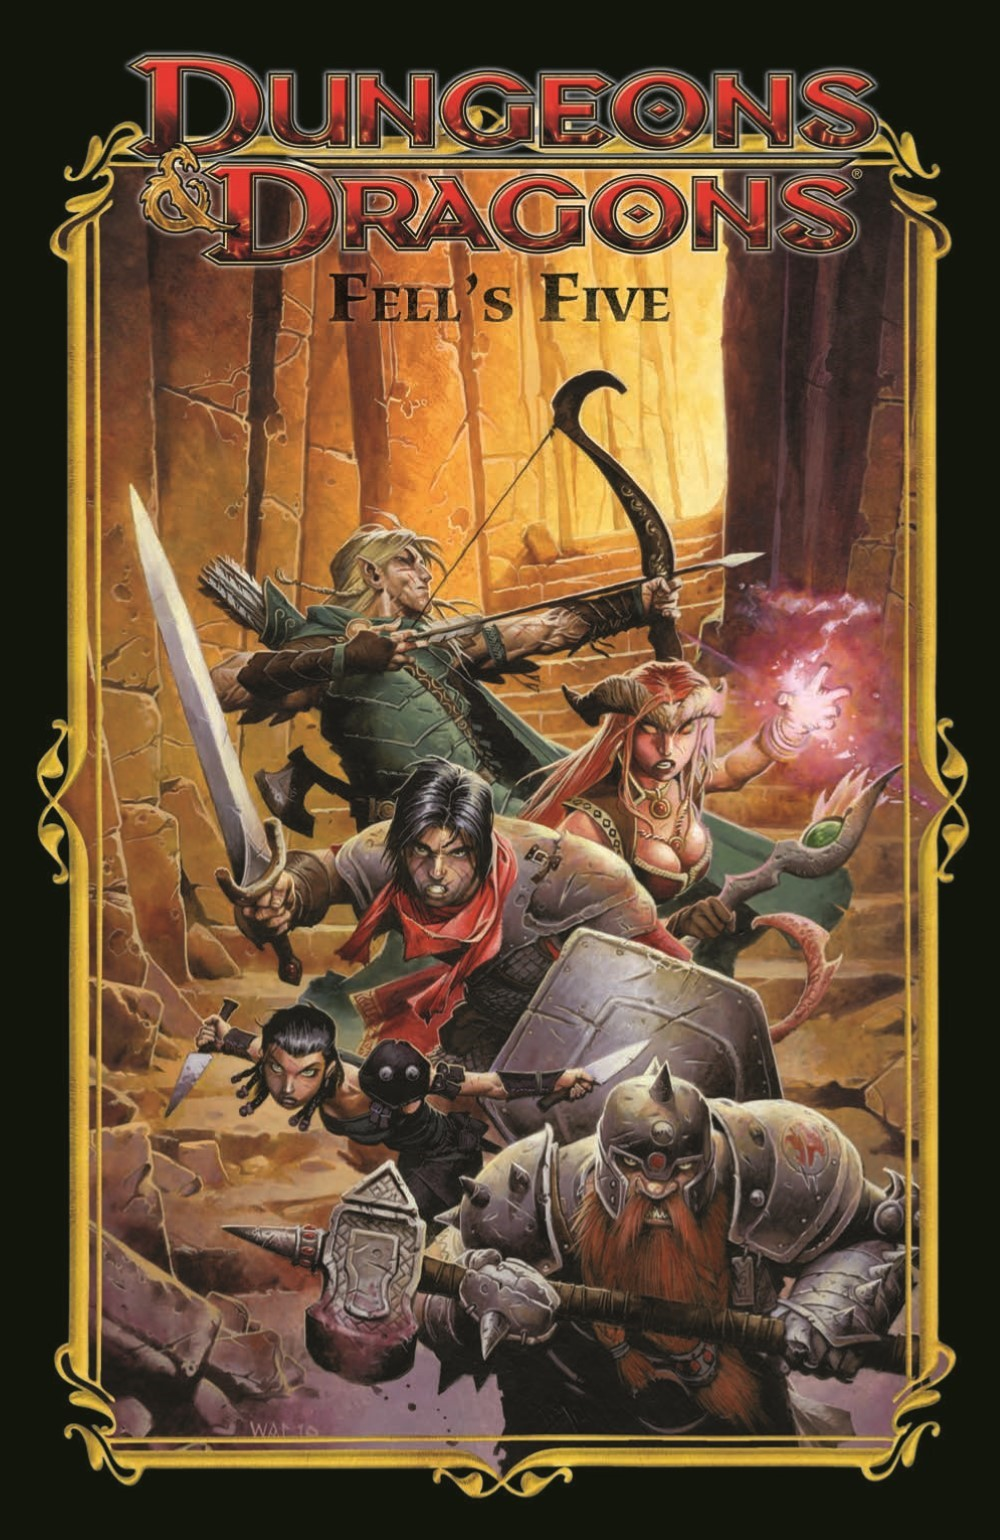 DD_FellsFive_TPB_pr-1 ComicList Previews: DUNGEONS AND DRAGONS FELL'S FIVE TP